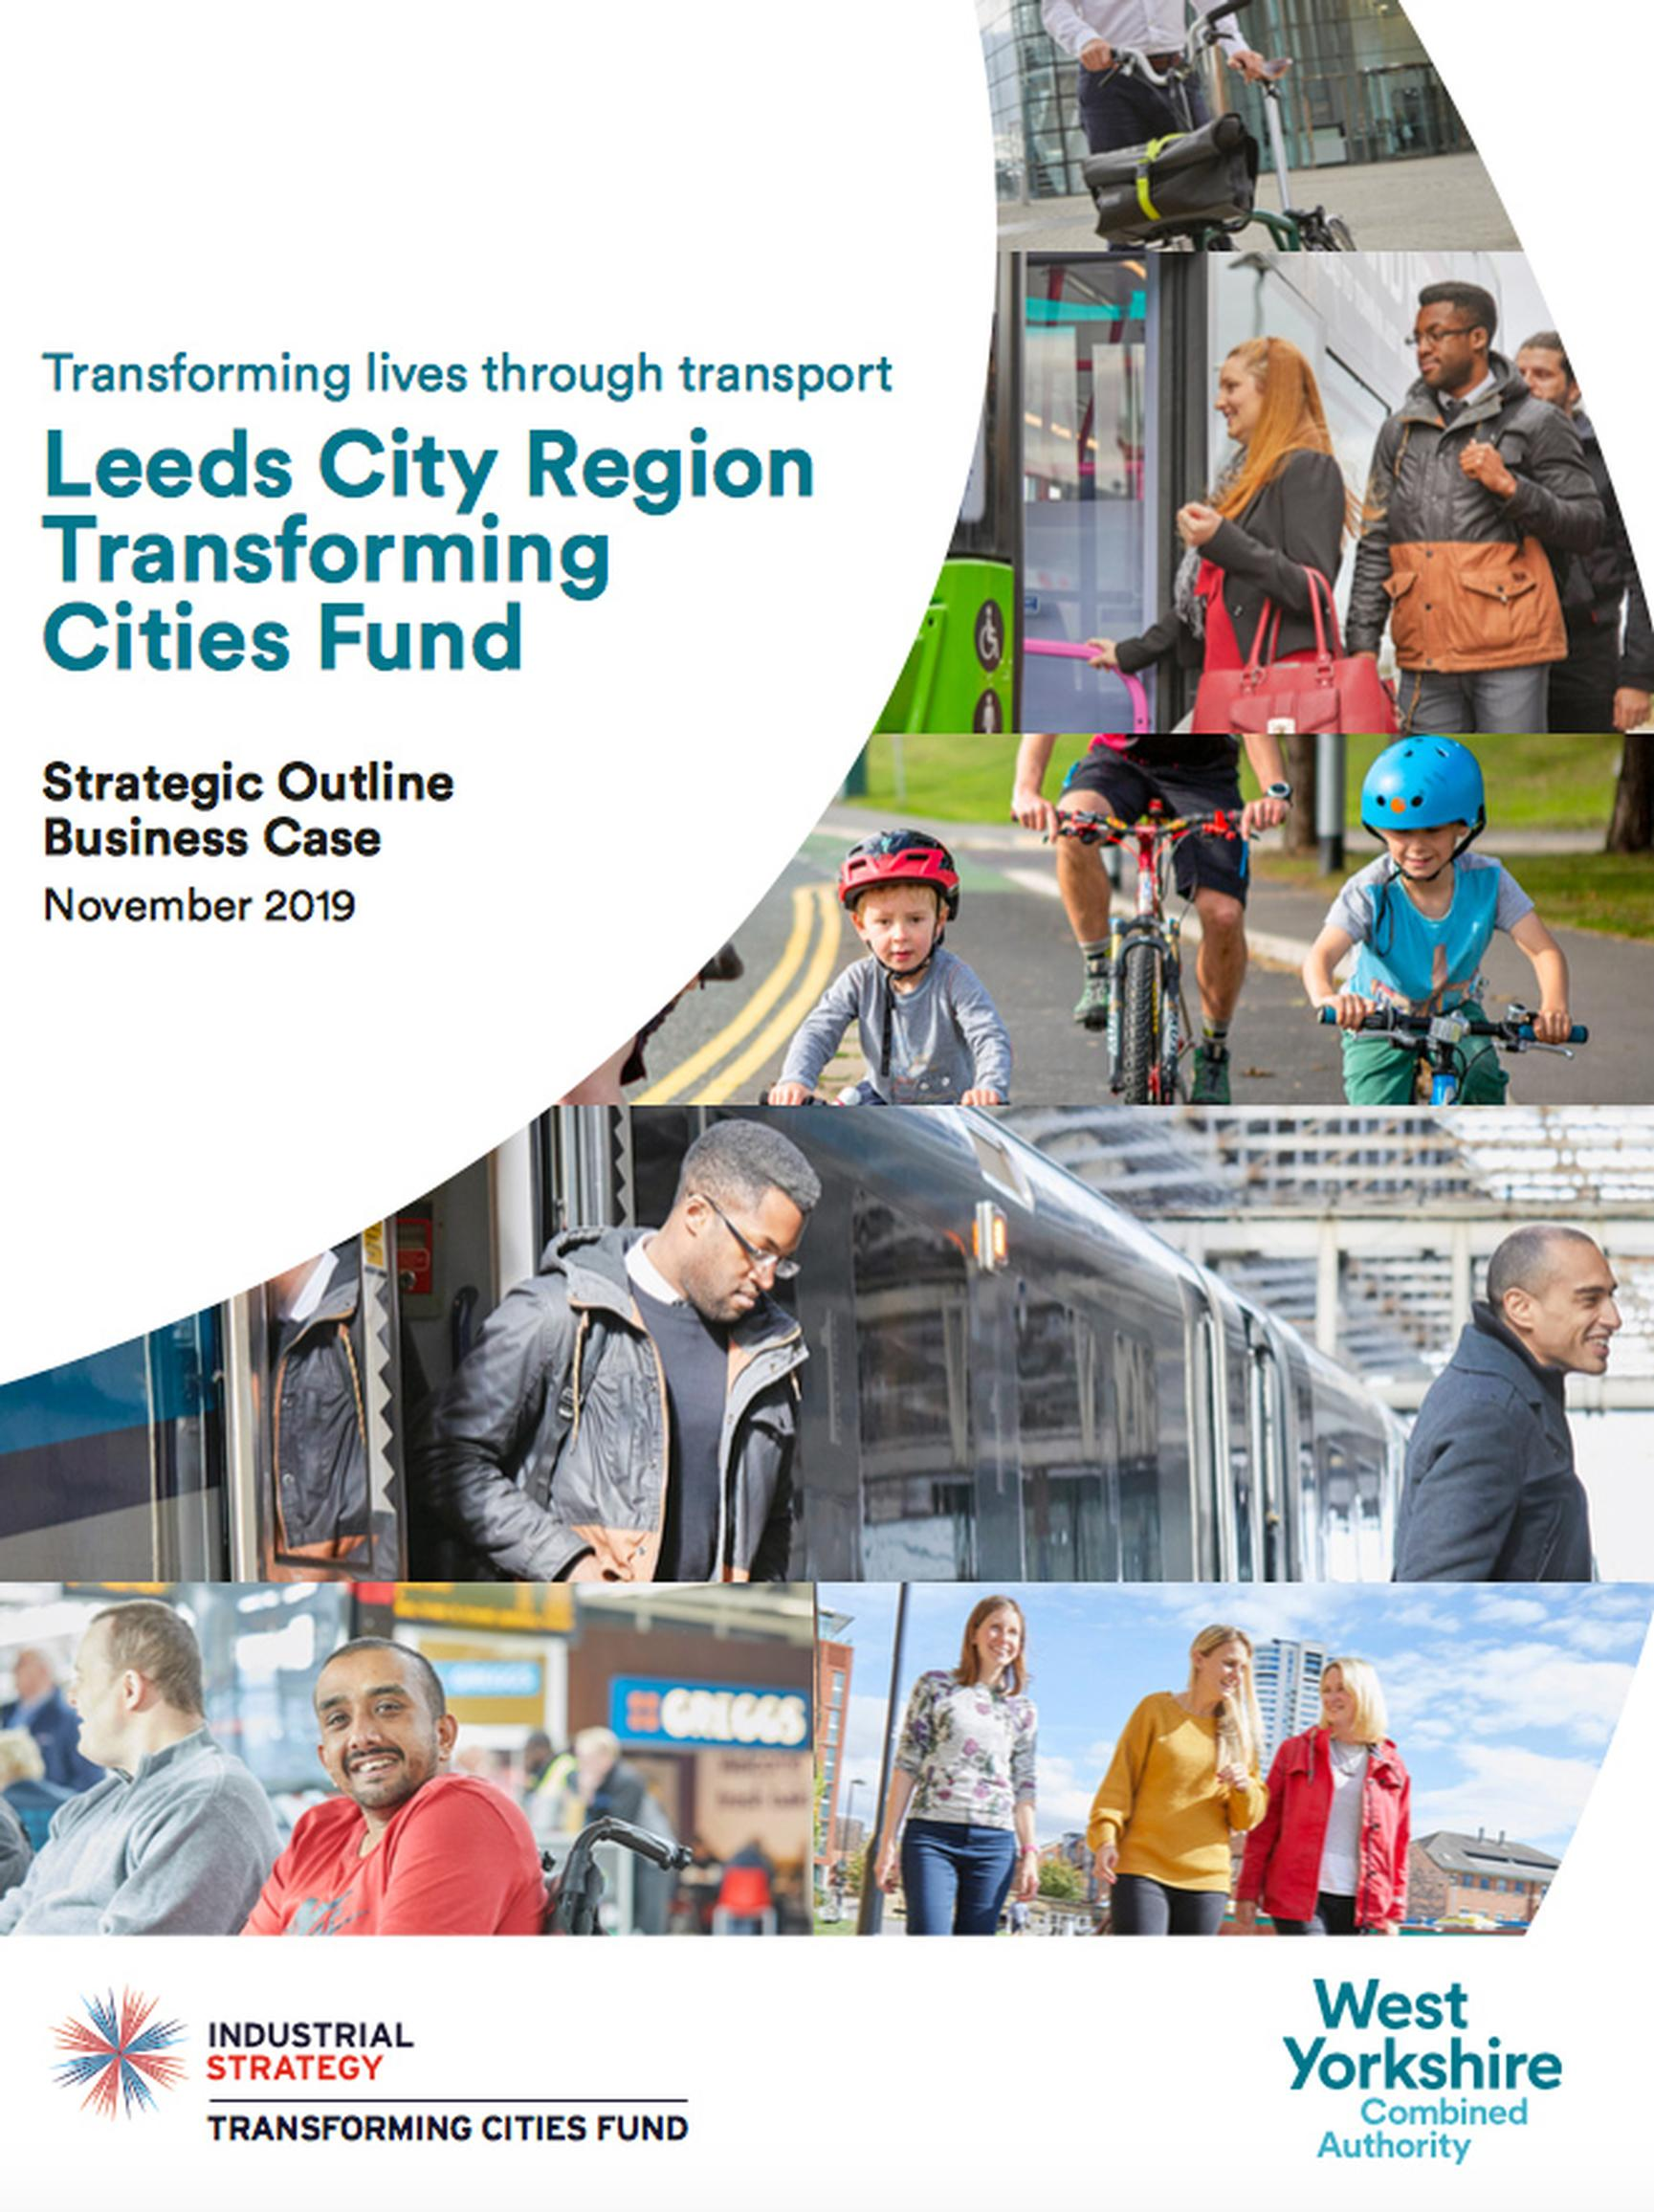 Transforming Cities Fund grant awards announced